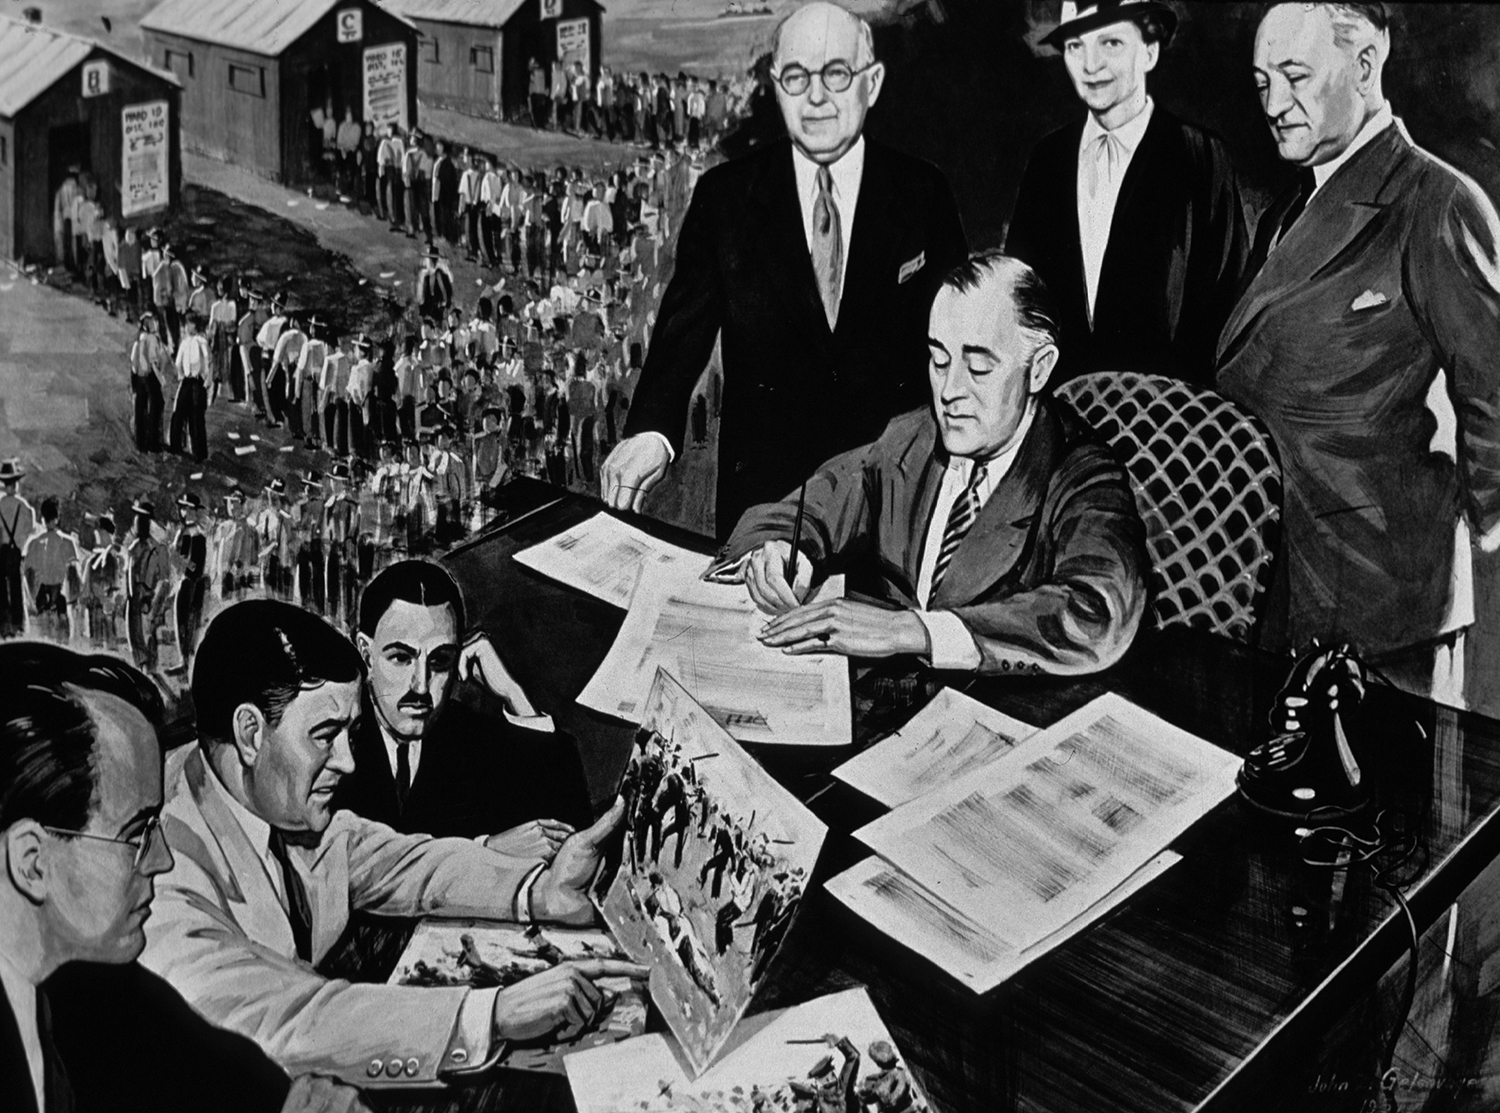 U.S. President Franklin Delano Roosevelt signs the National Labor Relations Act in a 1935 drawing.